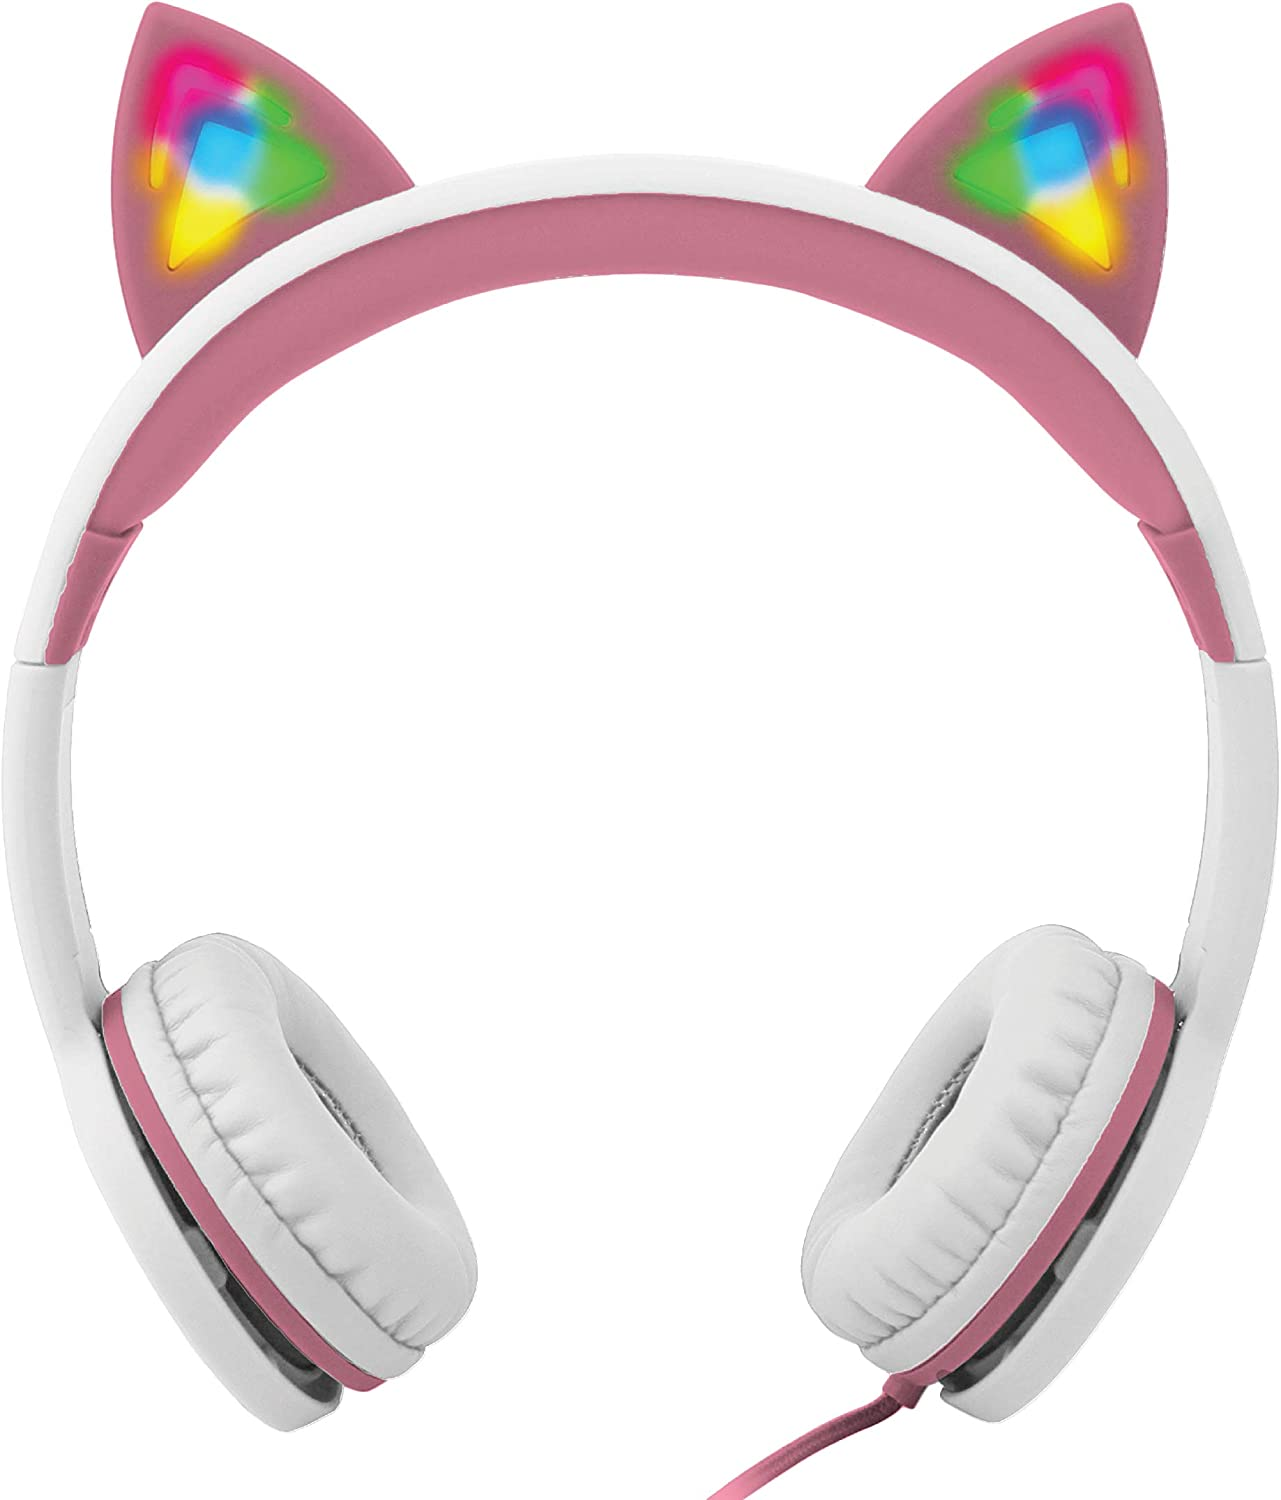 Discount Gabba Goods Premium Kid's/Children's Safe Sound LED Light Up in The Dark Unicorn Over The Ear Comfort Padded Stereo Headphones with AUX Cable | Earphones - 85 Decibels Pink MDtKkI1